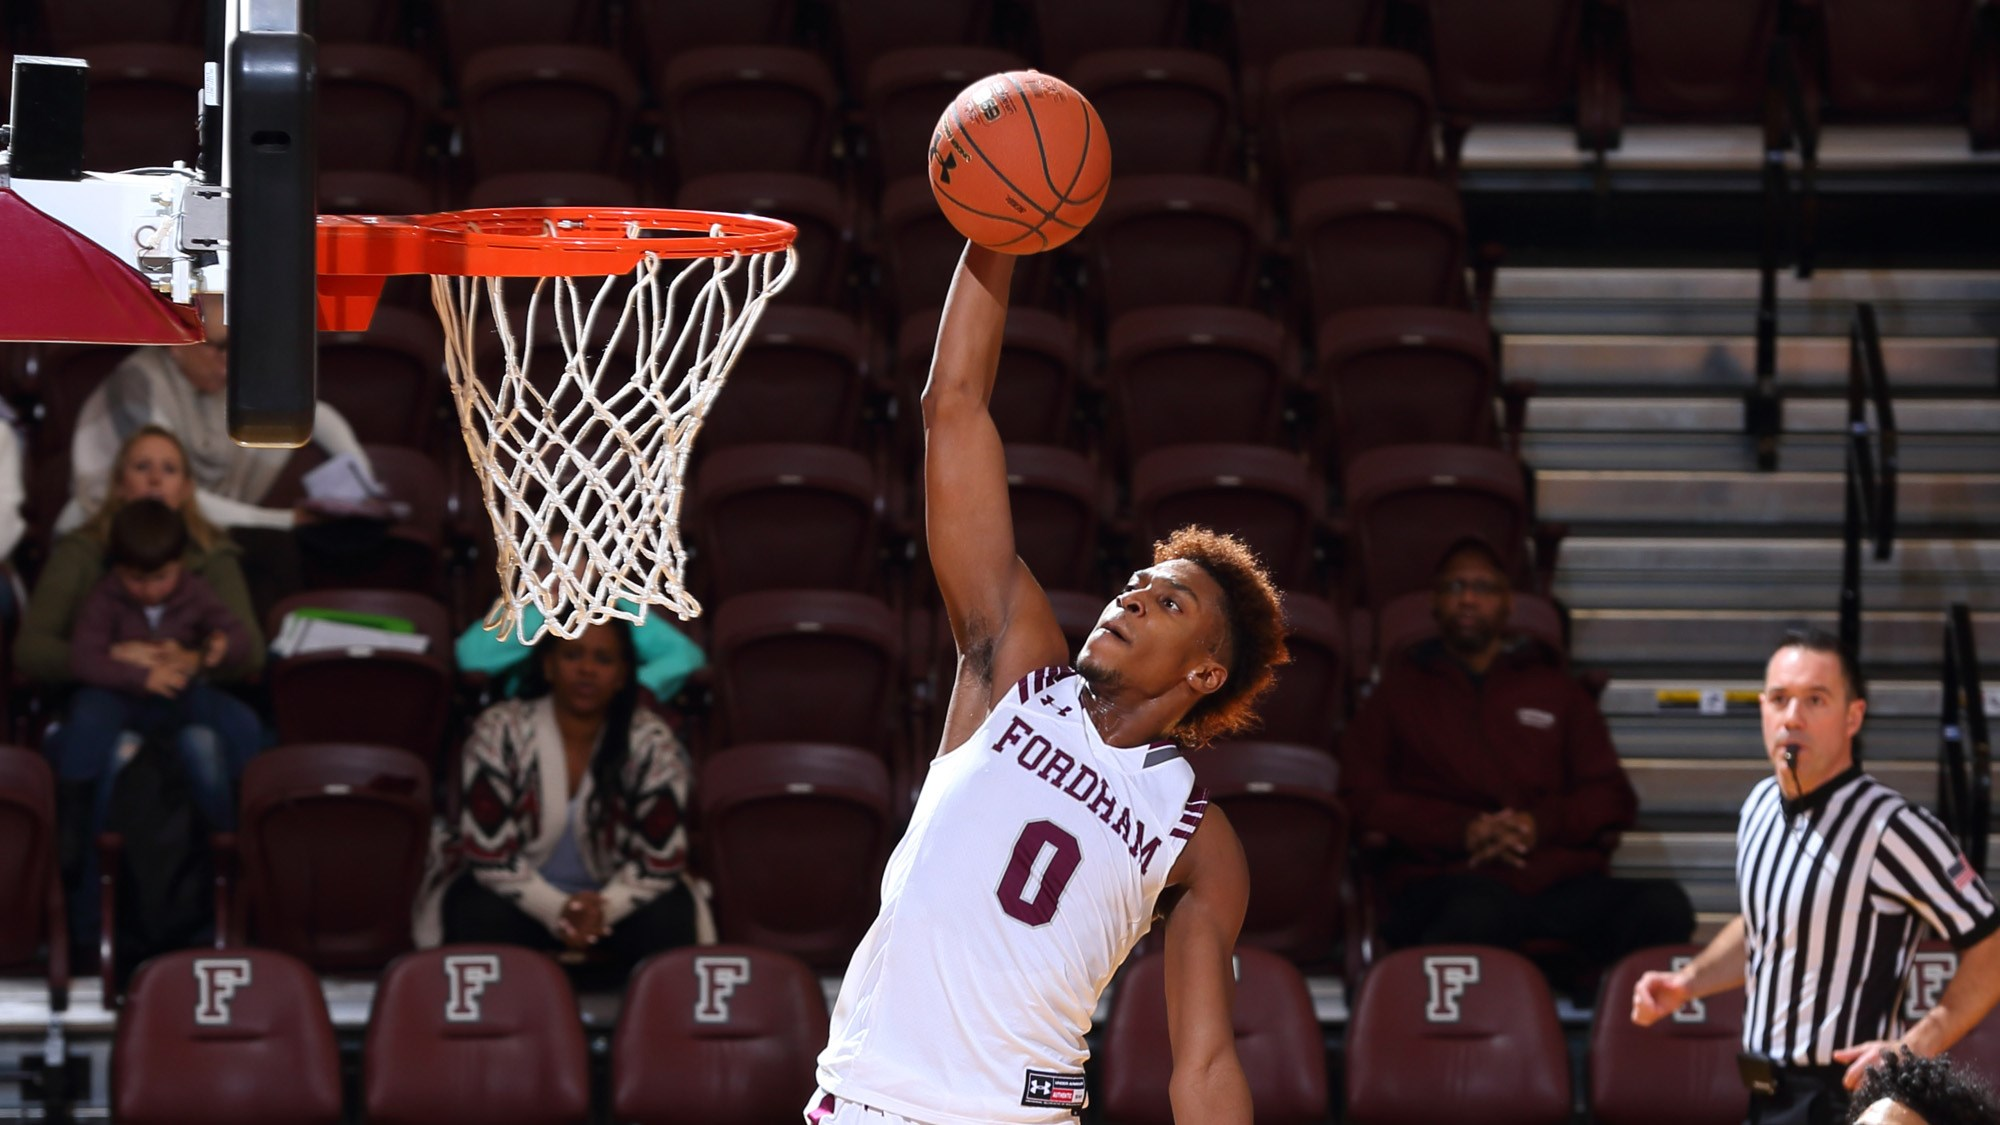 Men's Basketball Knocks Off St. Francis, 76-68